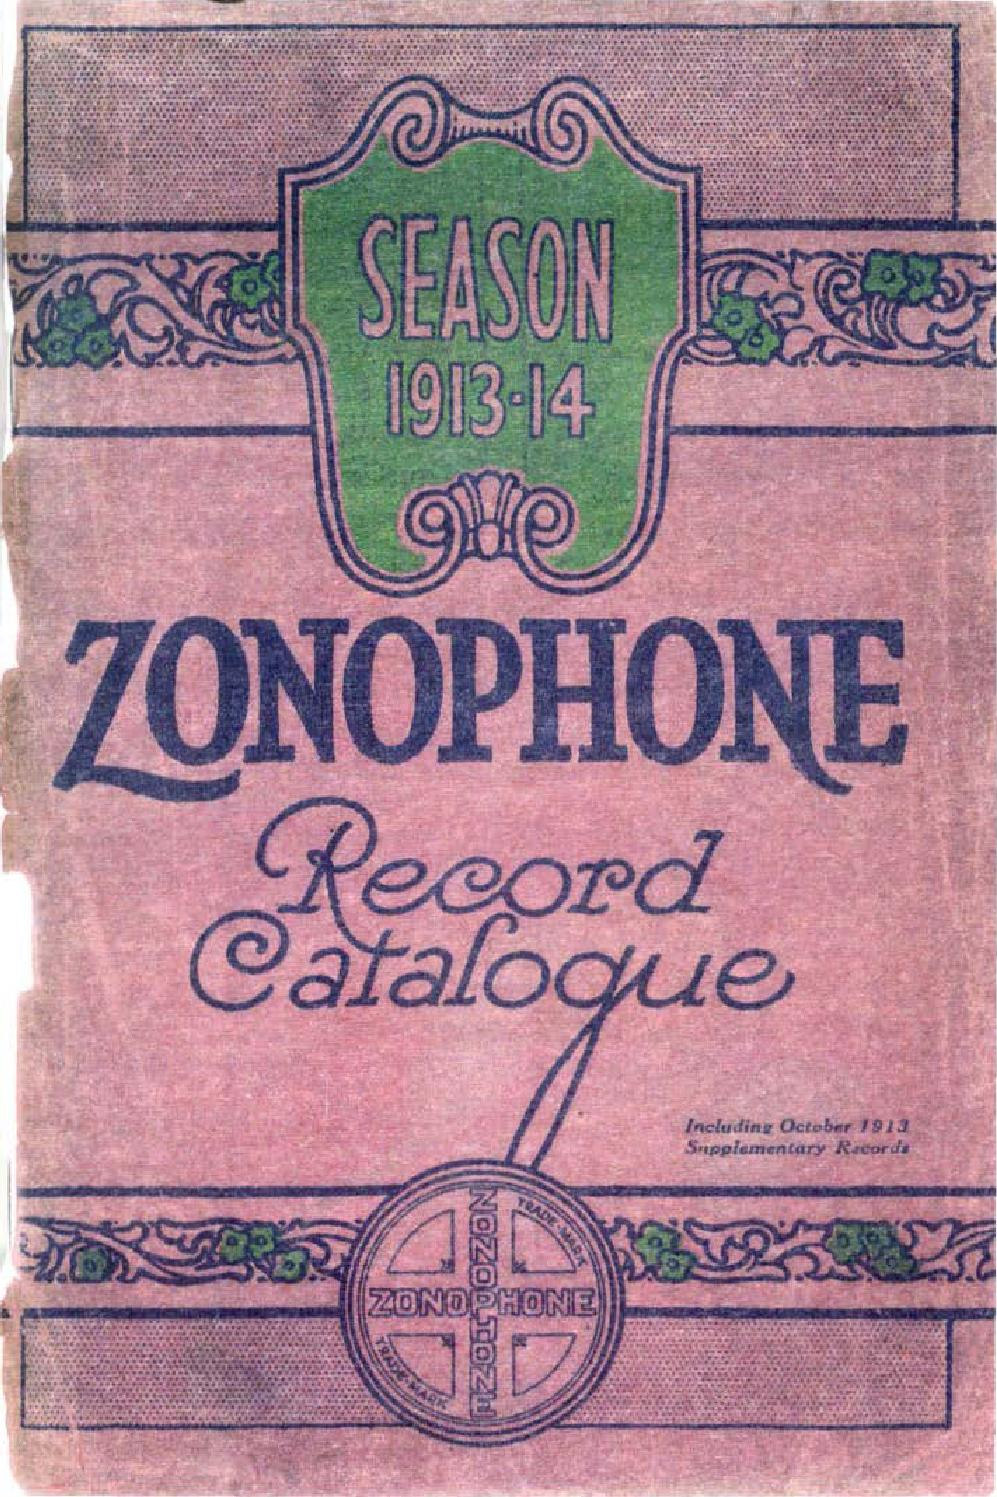 Zonophone Catalogue 1913-1914 by 78rpm Club - issuu